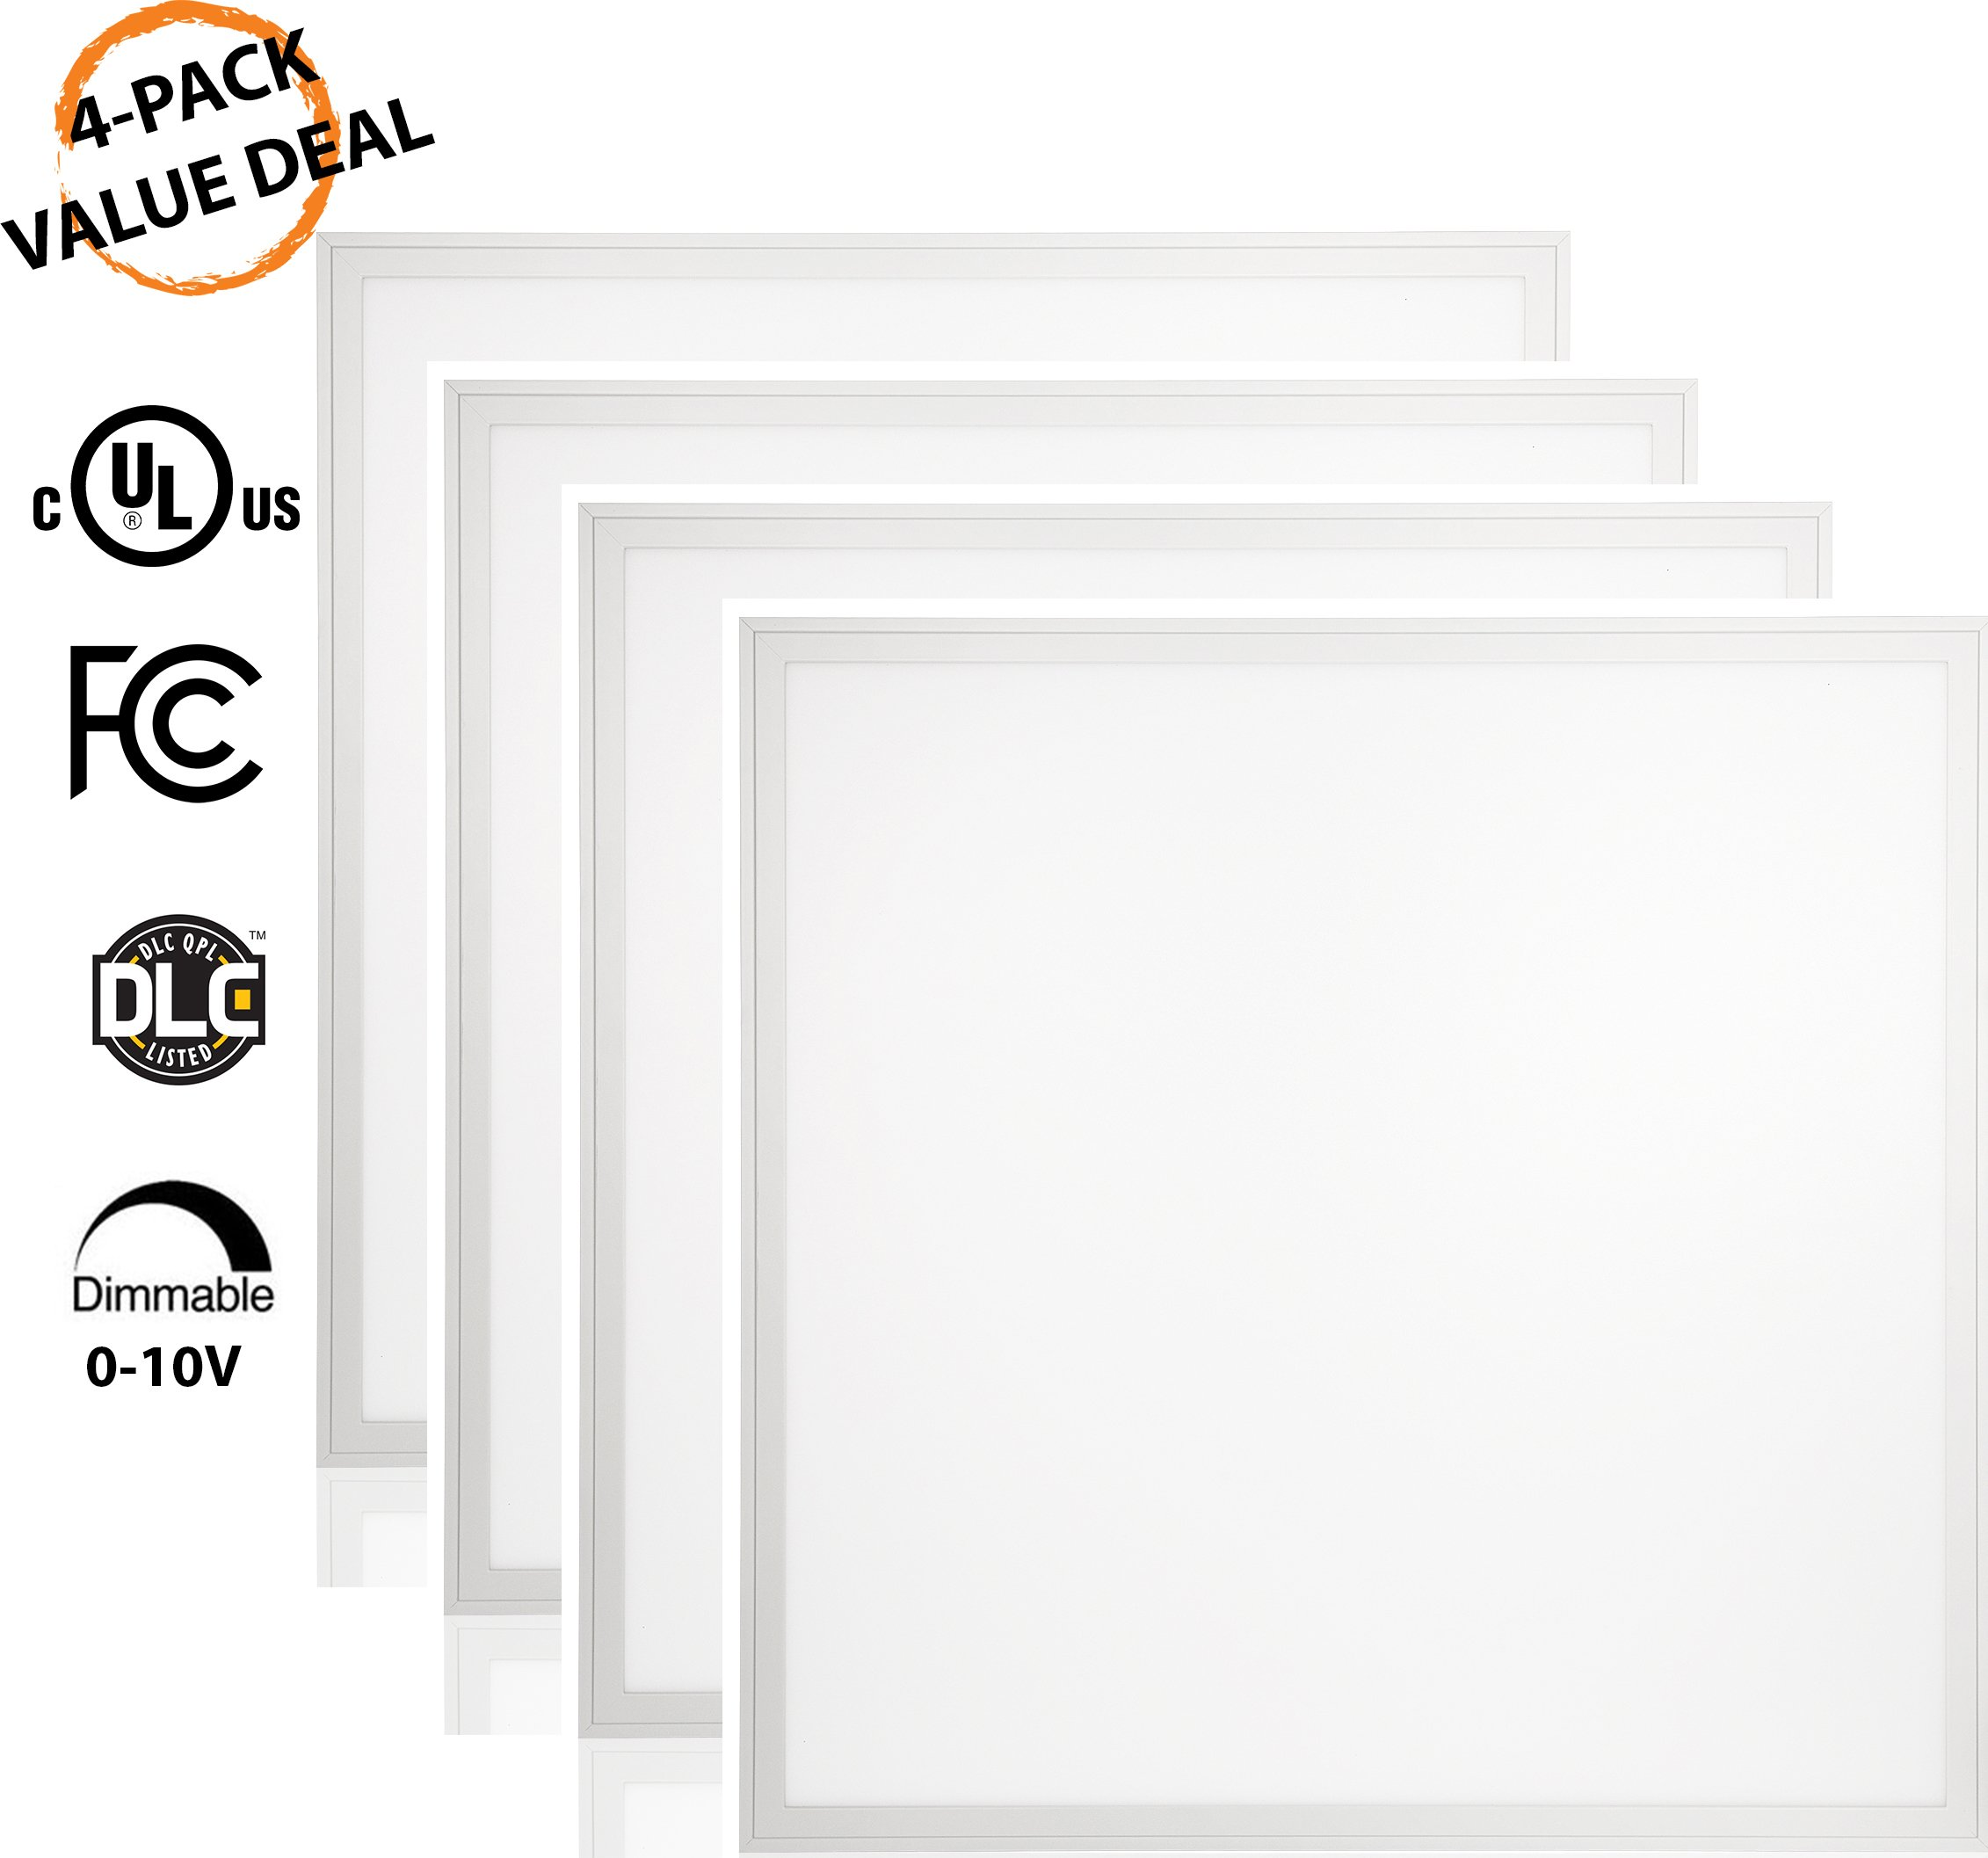 QUEST LED 2x2 (24'' x 24'') 5000k 40W 4-Pack LED Flat Edge-Lit Panel, 4,600 Lumens,120-277V, 0-10V Dimmable, 5 Year Warranty UL/DLC (2x2, 5000k) 4 PACK by QUEST MANUFACTURING